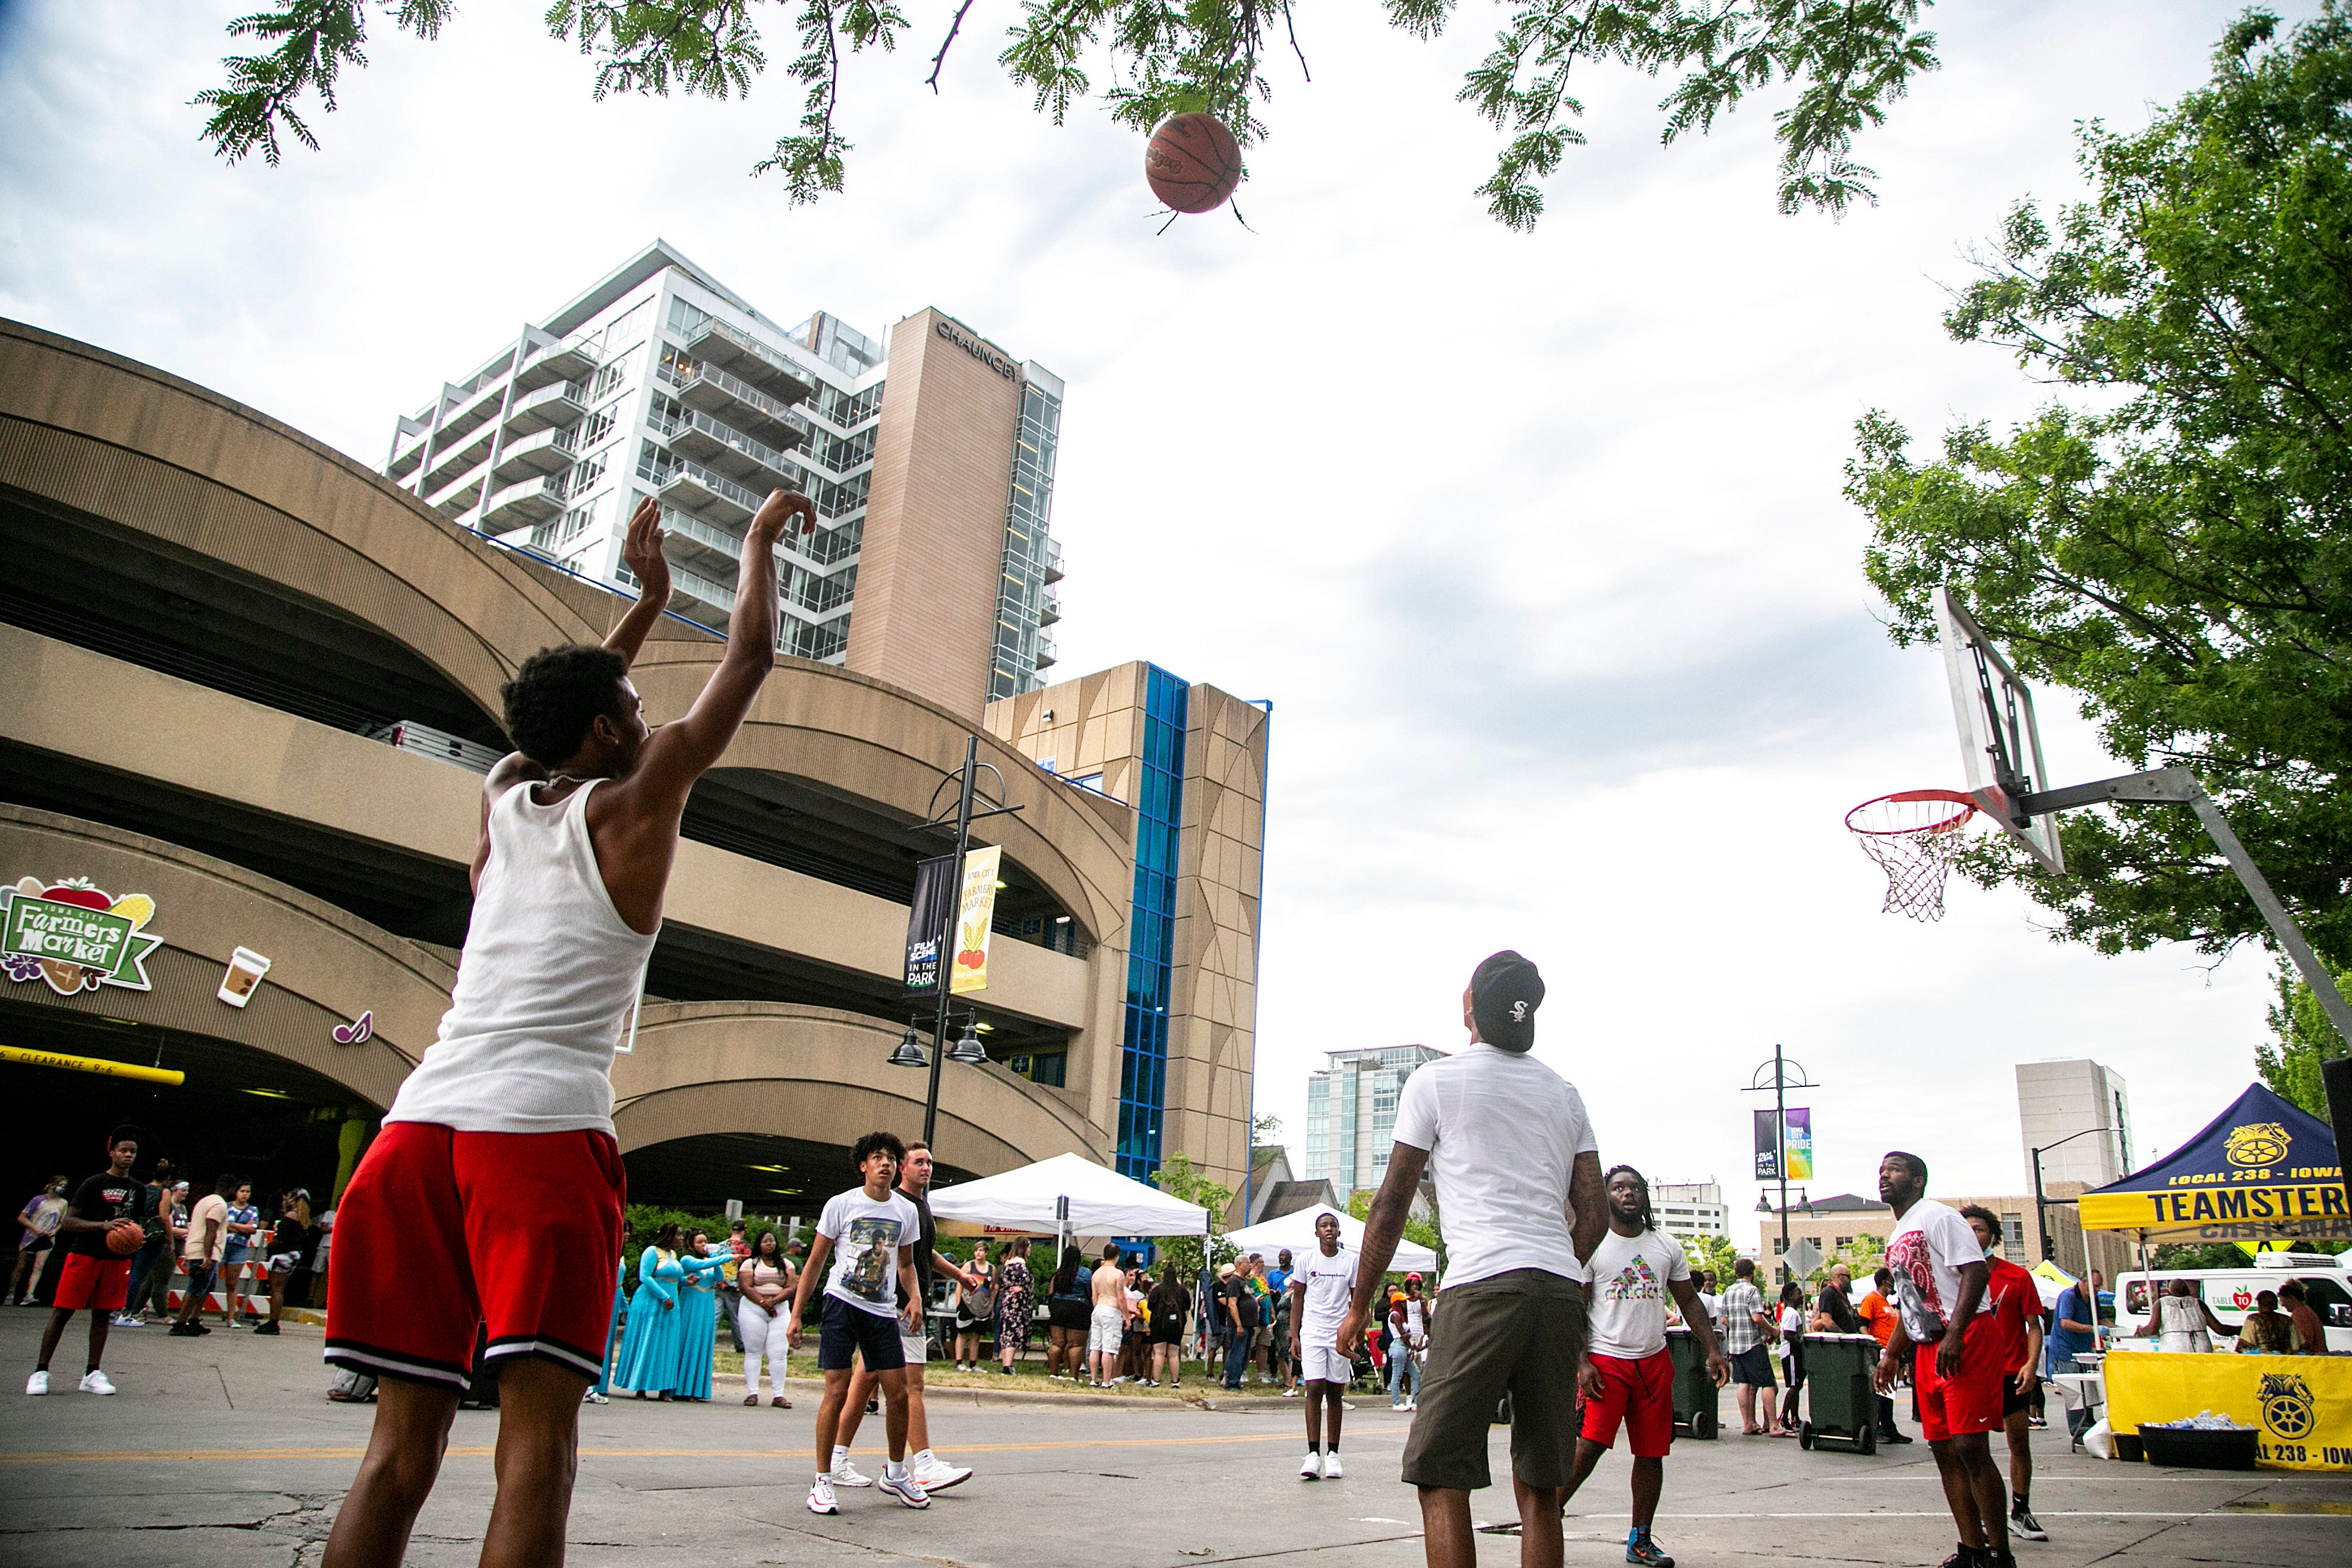 'We're working towards another level of freedom': Hundreds celebrate Juneteenth in Iowa City